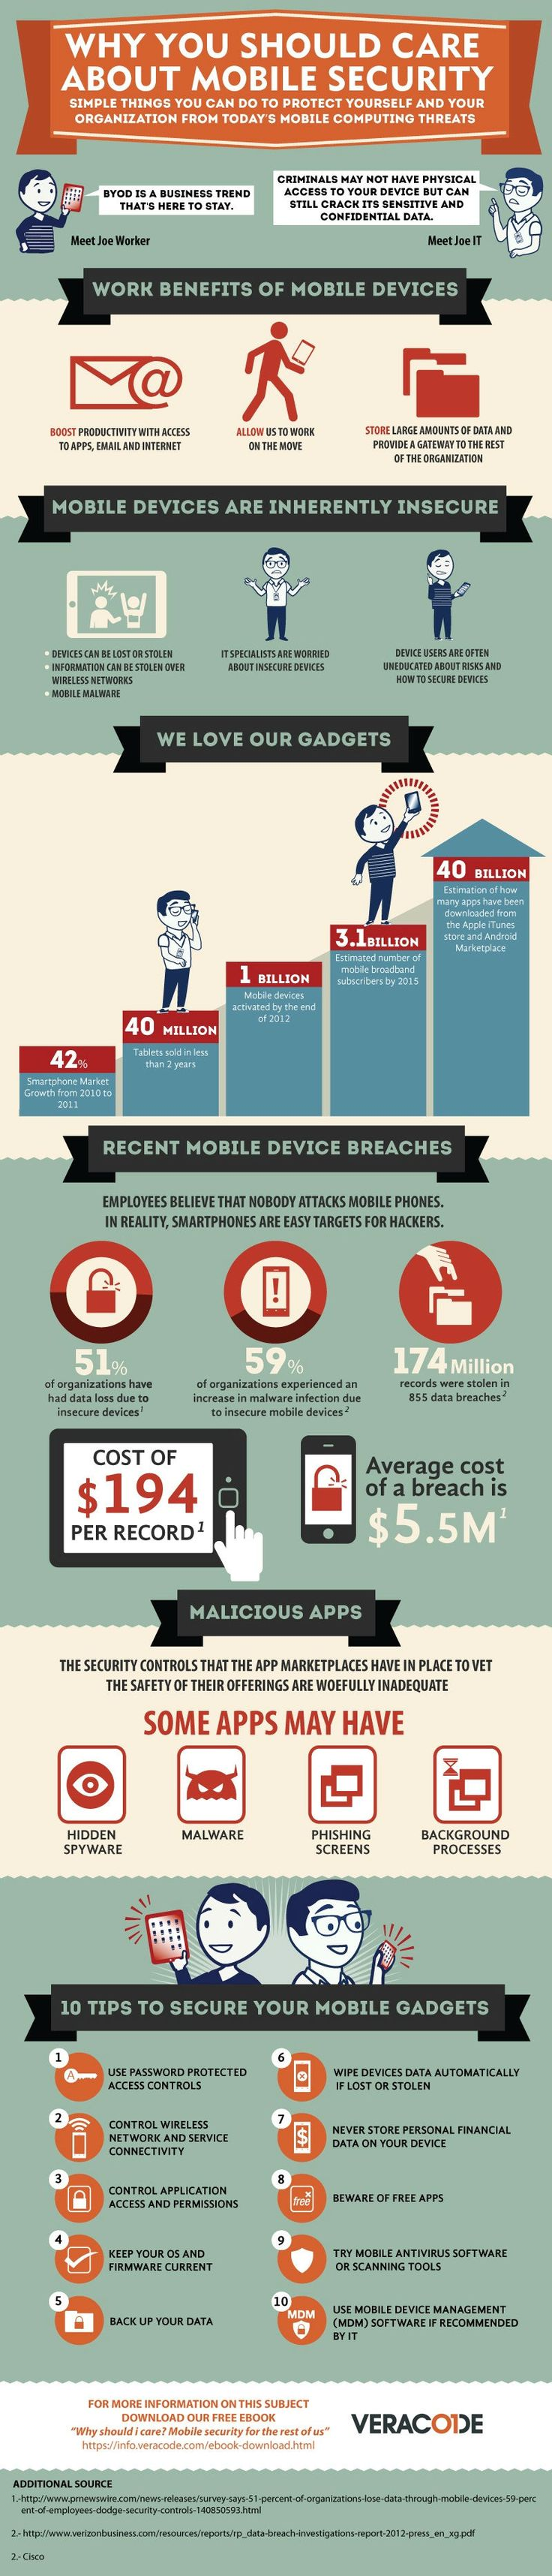 Why You Should Care About Mobile Security [INFOGRAPHIC]